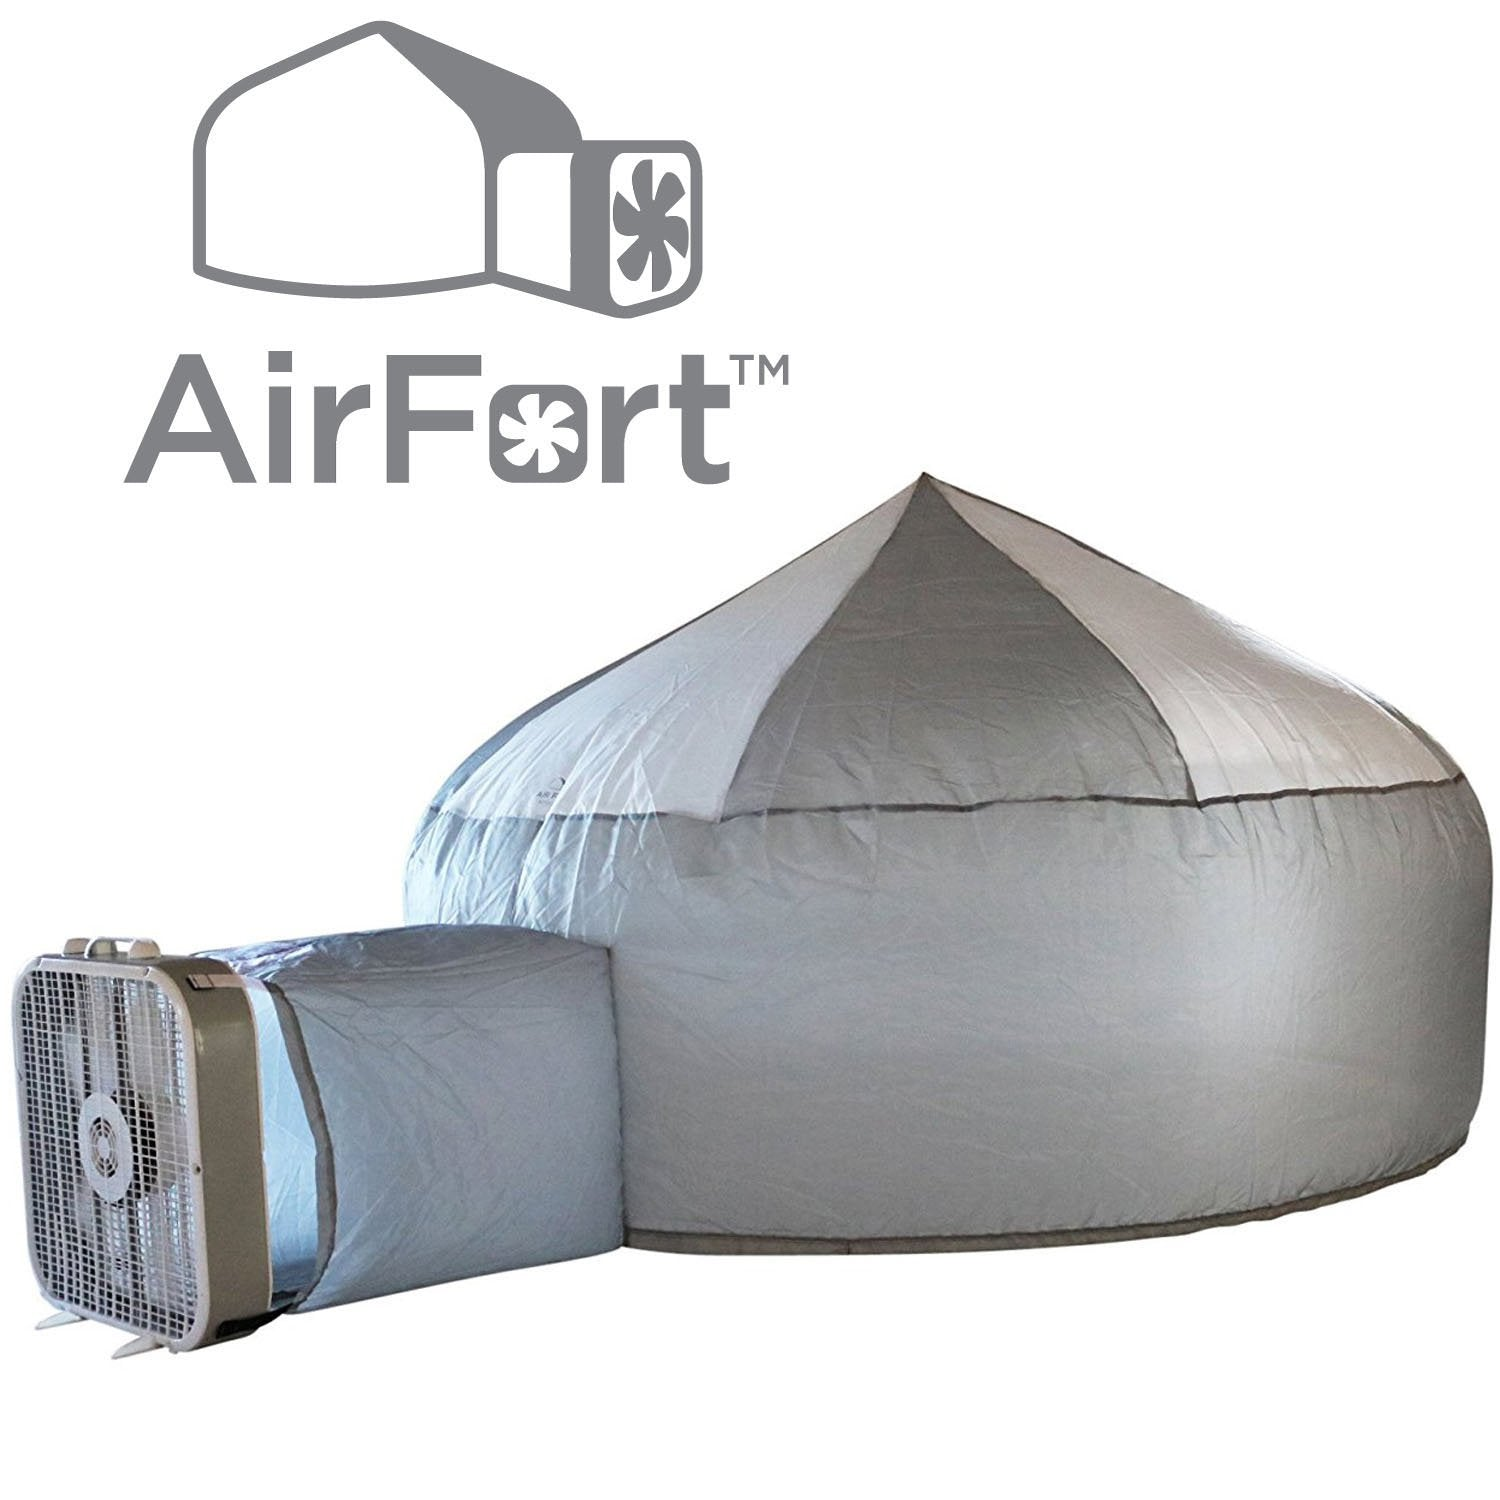 The Original Air Fort